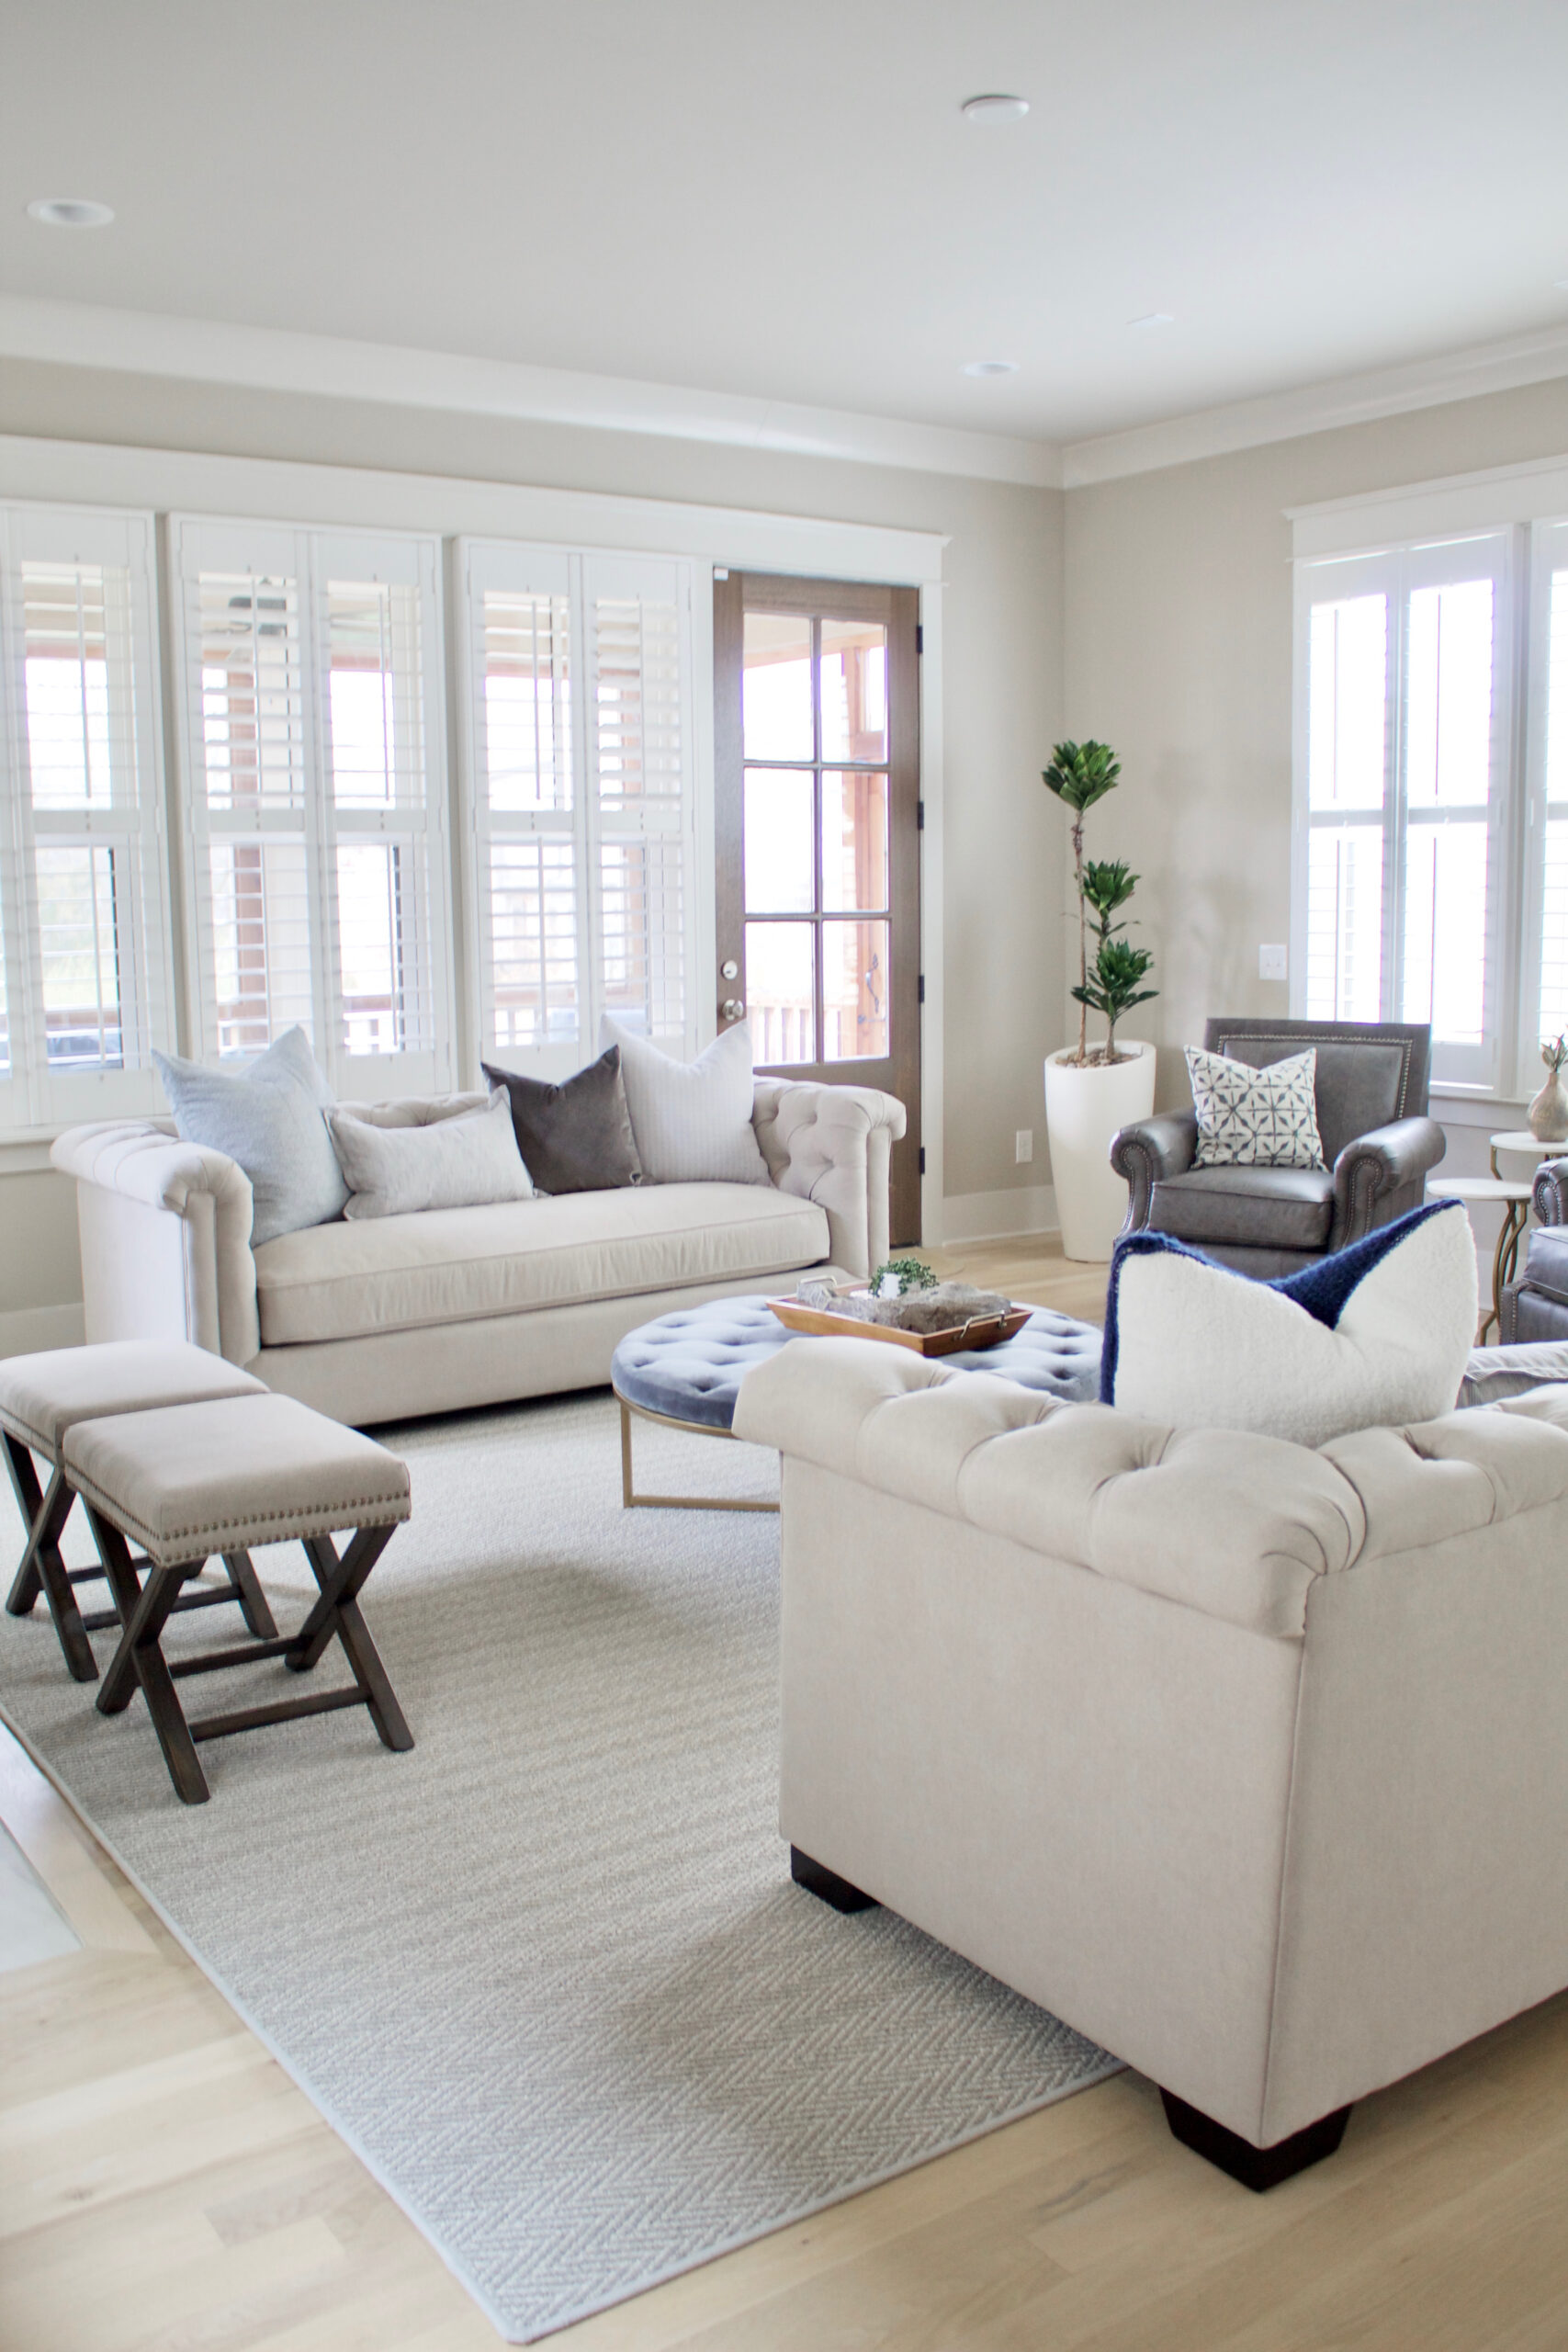 A light gray tufted sofa with traditional influence and modern flare. As part of the Kelly Clarkson Home Collection, it features a tufted back with matching roll arms and a bench-style cushion. The velour upholstery adds a welcoming, luxe element that makes it perfect for a contemporary living space. #lightgraysofa #lightgraytuftedsofa #tuftedsofa #contemporarytuftedsofa #benchseatsofa #KellyClarksonHomeCollection